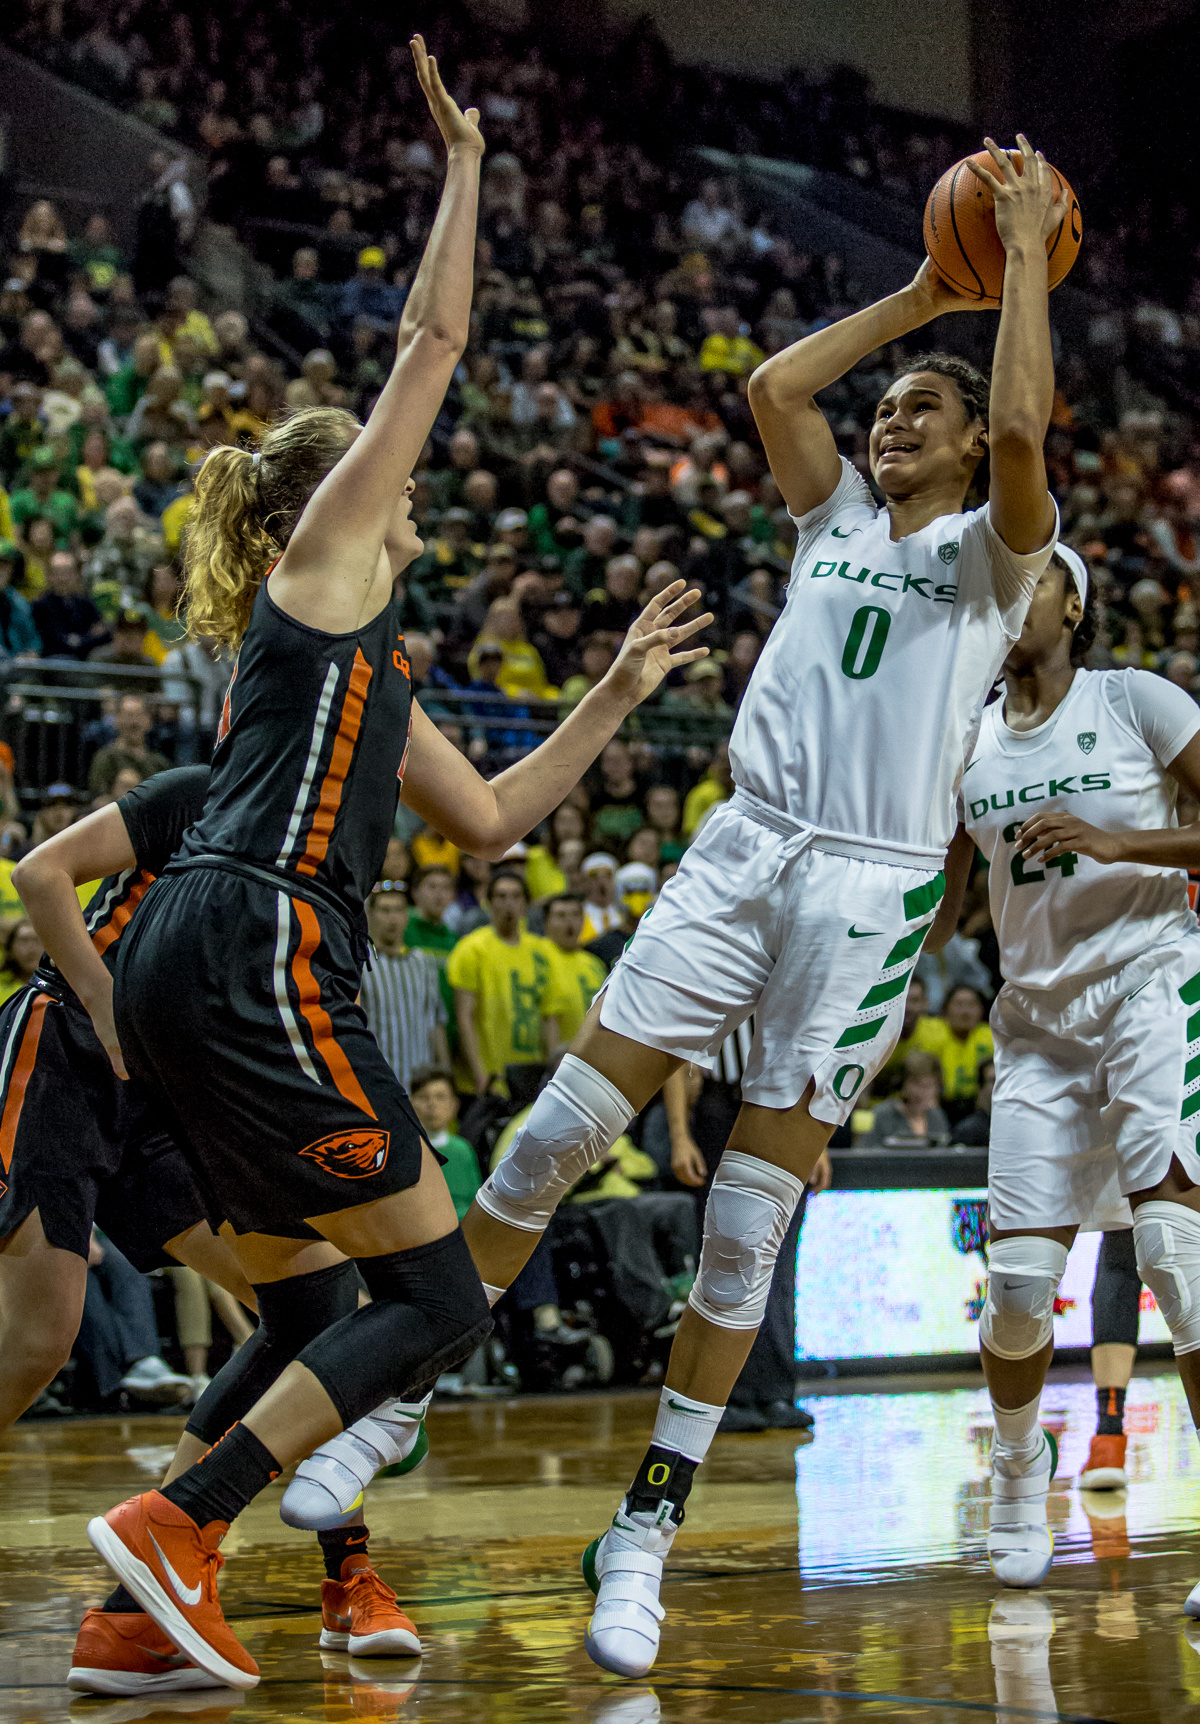 Oregon forward Satou Salby (#0) shoots over Oregon State center Marie Gülich (#21). The Oregon Ducks defeated the Oregon State Beavers 75-63 on Sunday afternoon in front of a crowd of 7,249 at Matthew Knight Arena. The Ducks and Beavers split the two game Civil War with the Beavers defeating the Ducks on Friday night in Corvallis. The Ducks had four players in double digits: Satou Sabally with 21 points, Maite Cazorla with 16, Sabrina Ionescu with 15, and Mallory McGwire with 14. The Ducks shot 48.4% from the floor compared to the Beavers 37.3%. The Ducks are now 7-1 in conference play. Photo by Ben Lonergan, Oregon News Lab